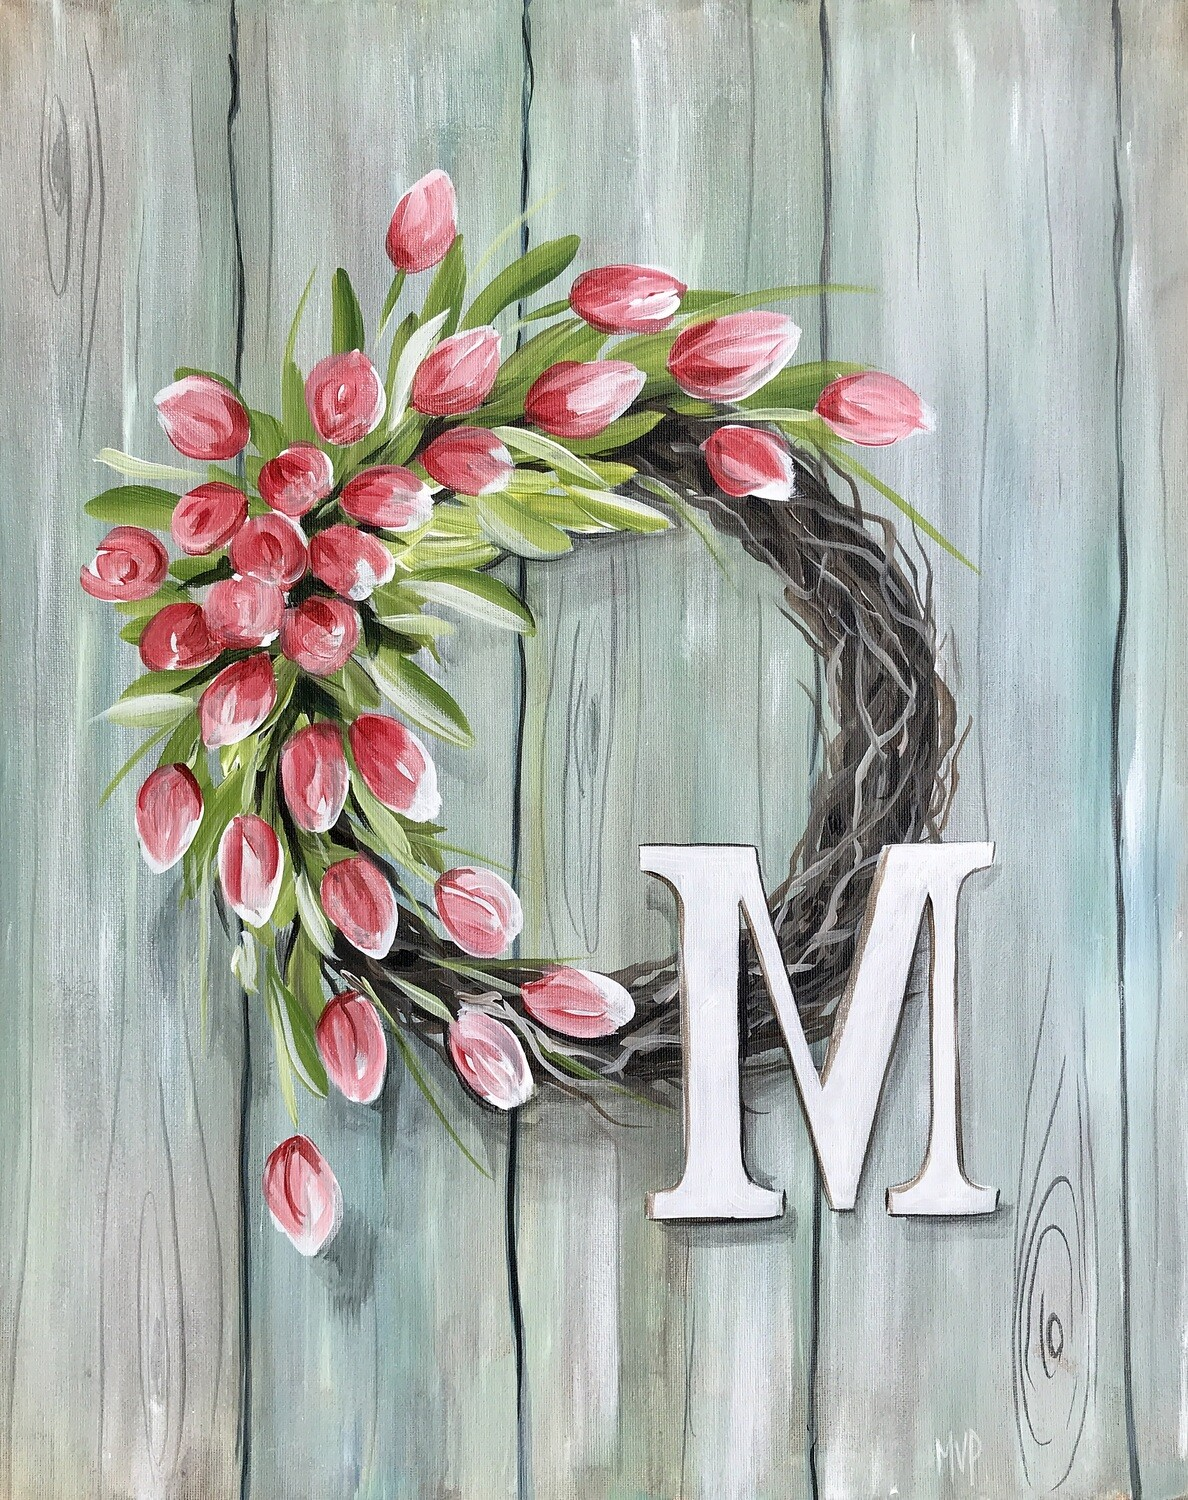 In Studio - Wreath with Tulips painting